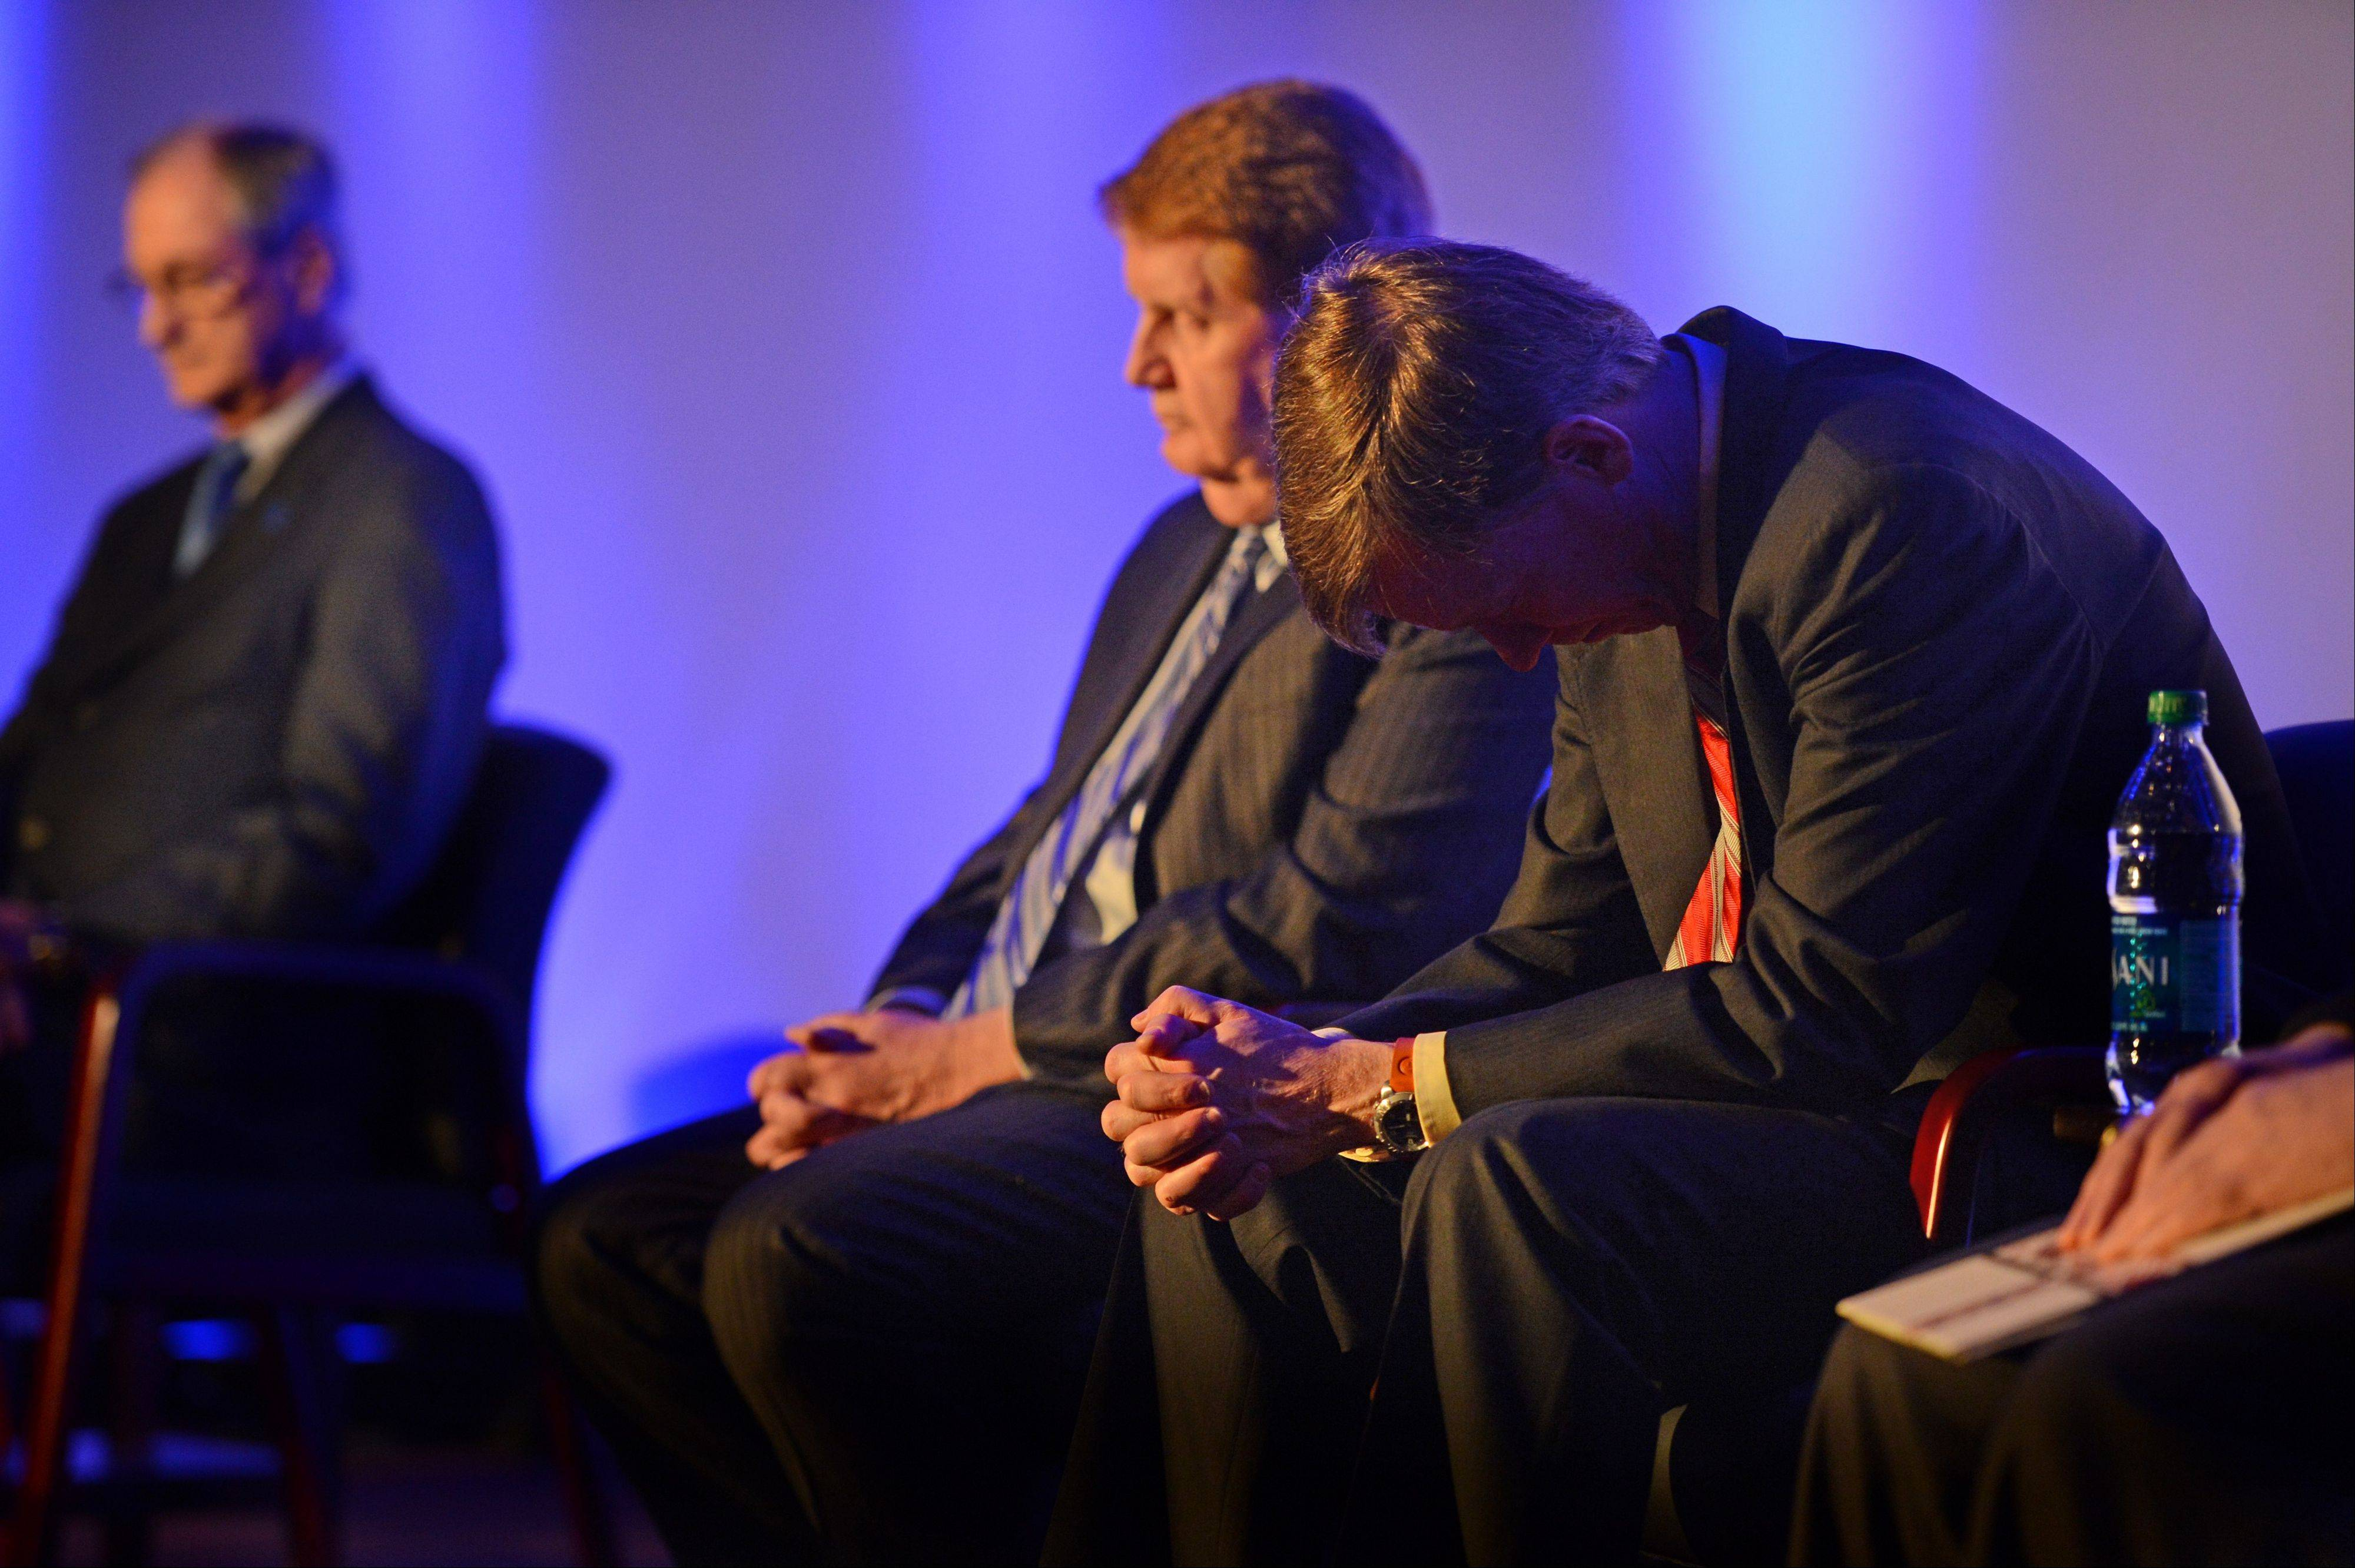 Colorado Gov. John Hickenlooper bows his head during a prayer at the reopening and remembrance ceremony at the Century Aurora cinema, formerly the Century 16, Thursday, Jan. 17, 2013 in Aurora, Colo. The cinema is where 12 people were killed and dozens injured in a shooting rampage last July.